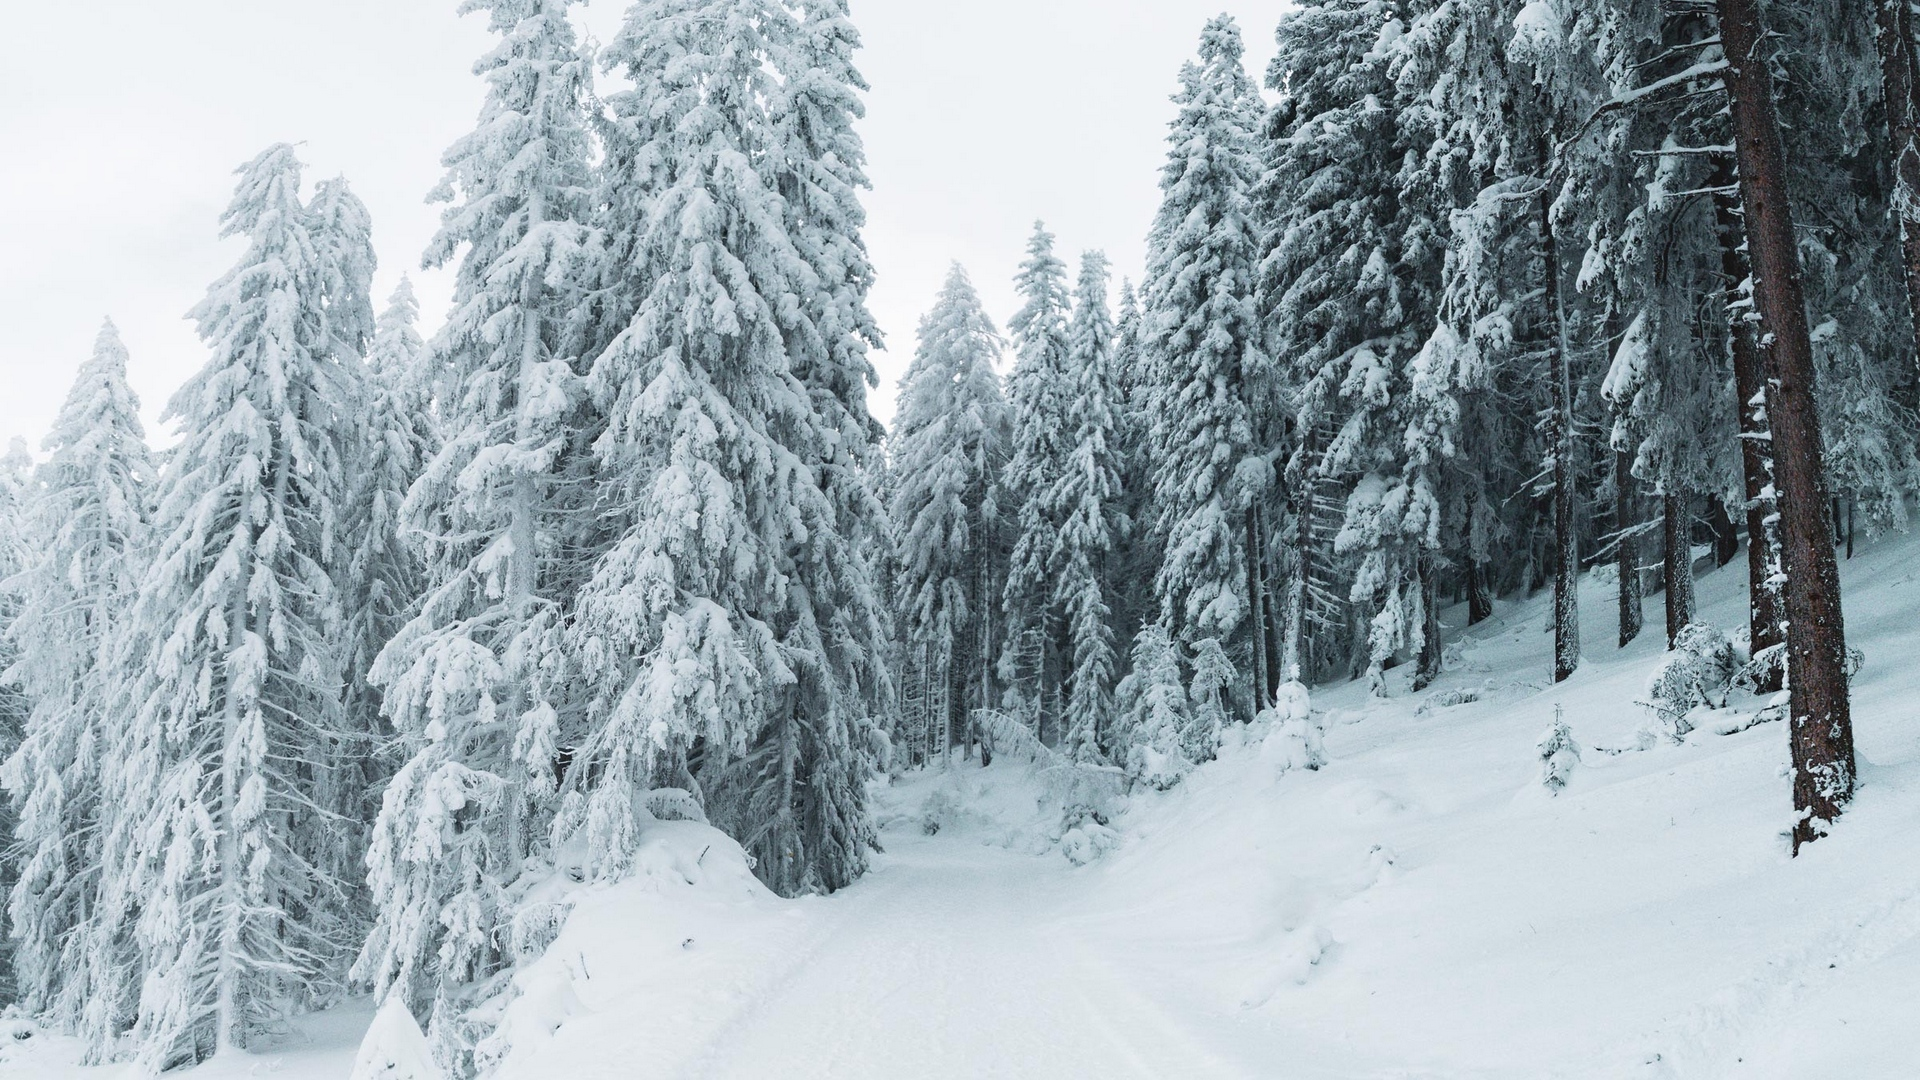 Wallpaper Winter, Snow, Trees, Path, Snowy - Iphone Snowy Trees Background - HD Wallpaper